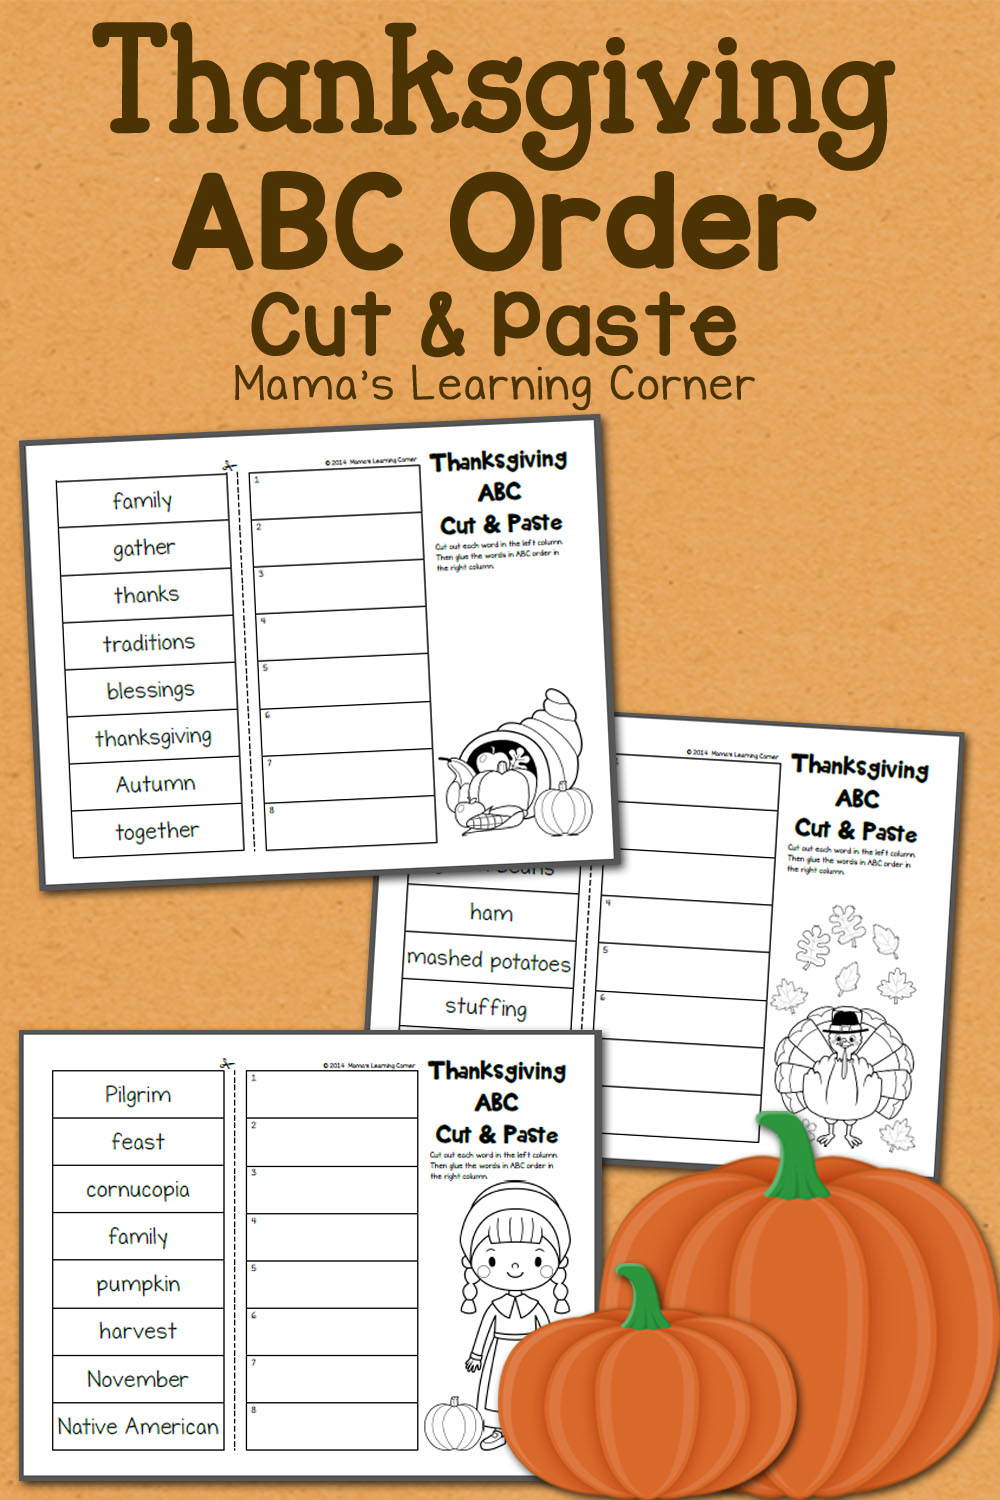 medium resolution of Thanksgiving ABC Order: Cut and Paste Worksheets - Mamas Learning Corner